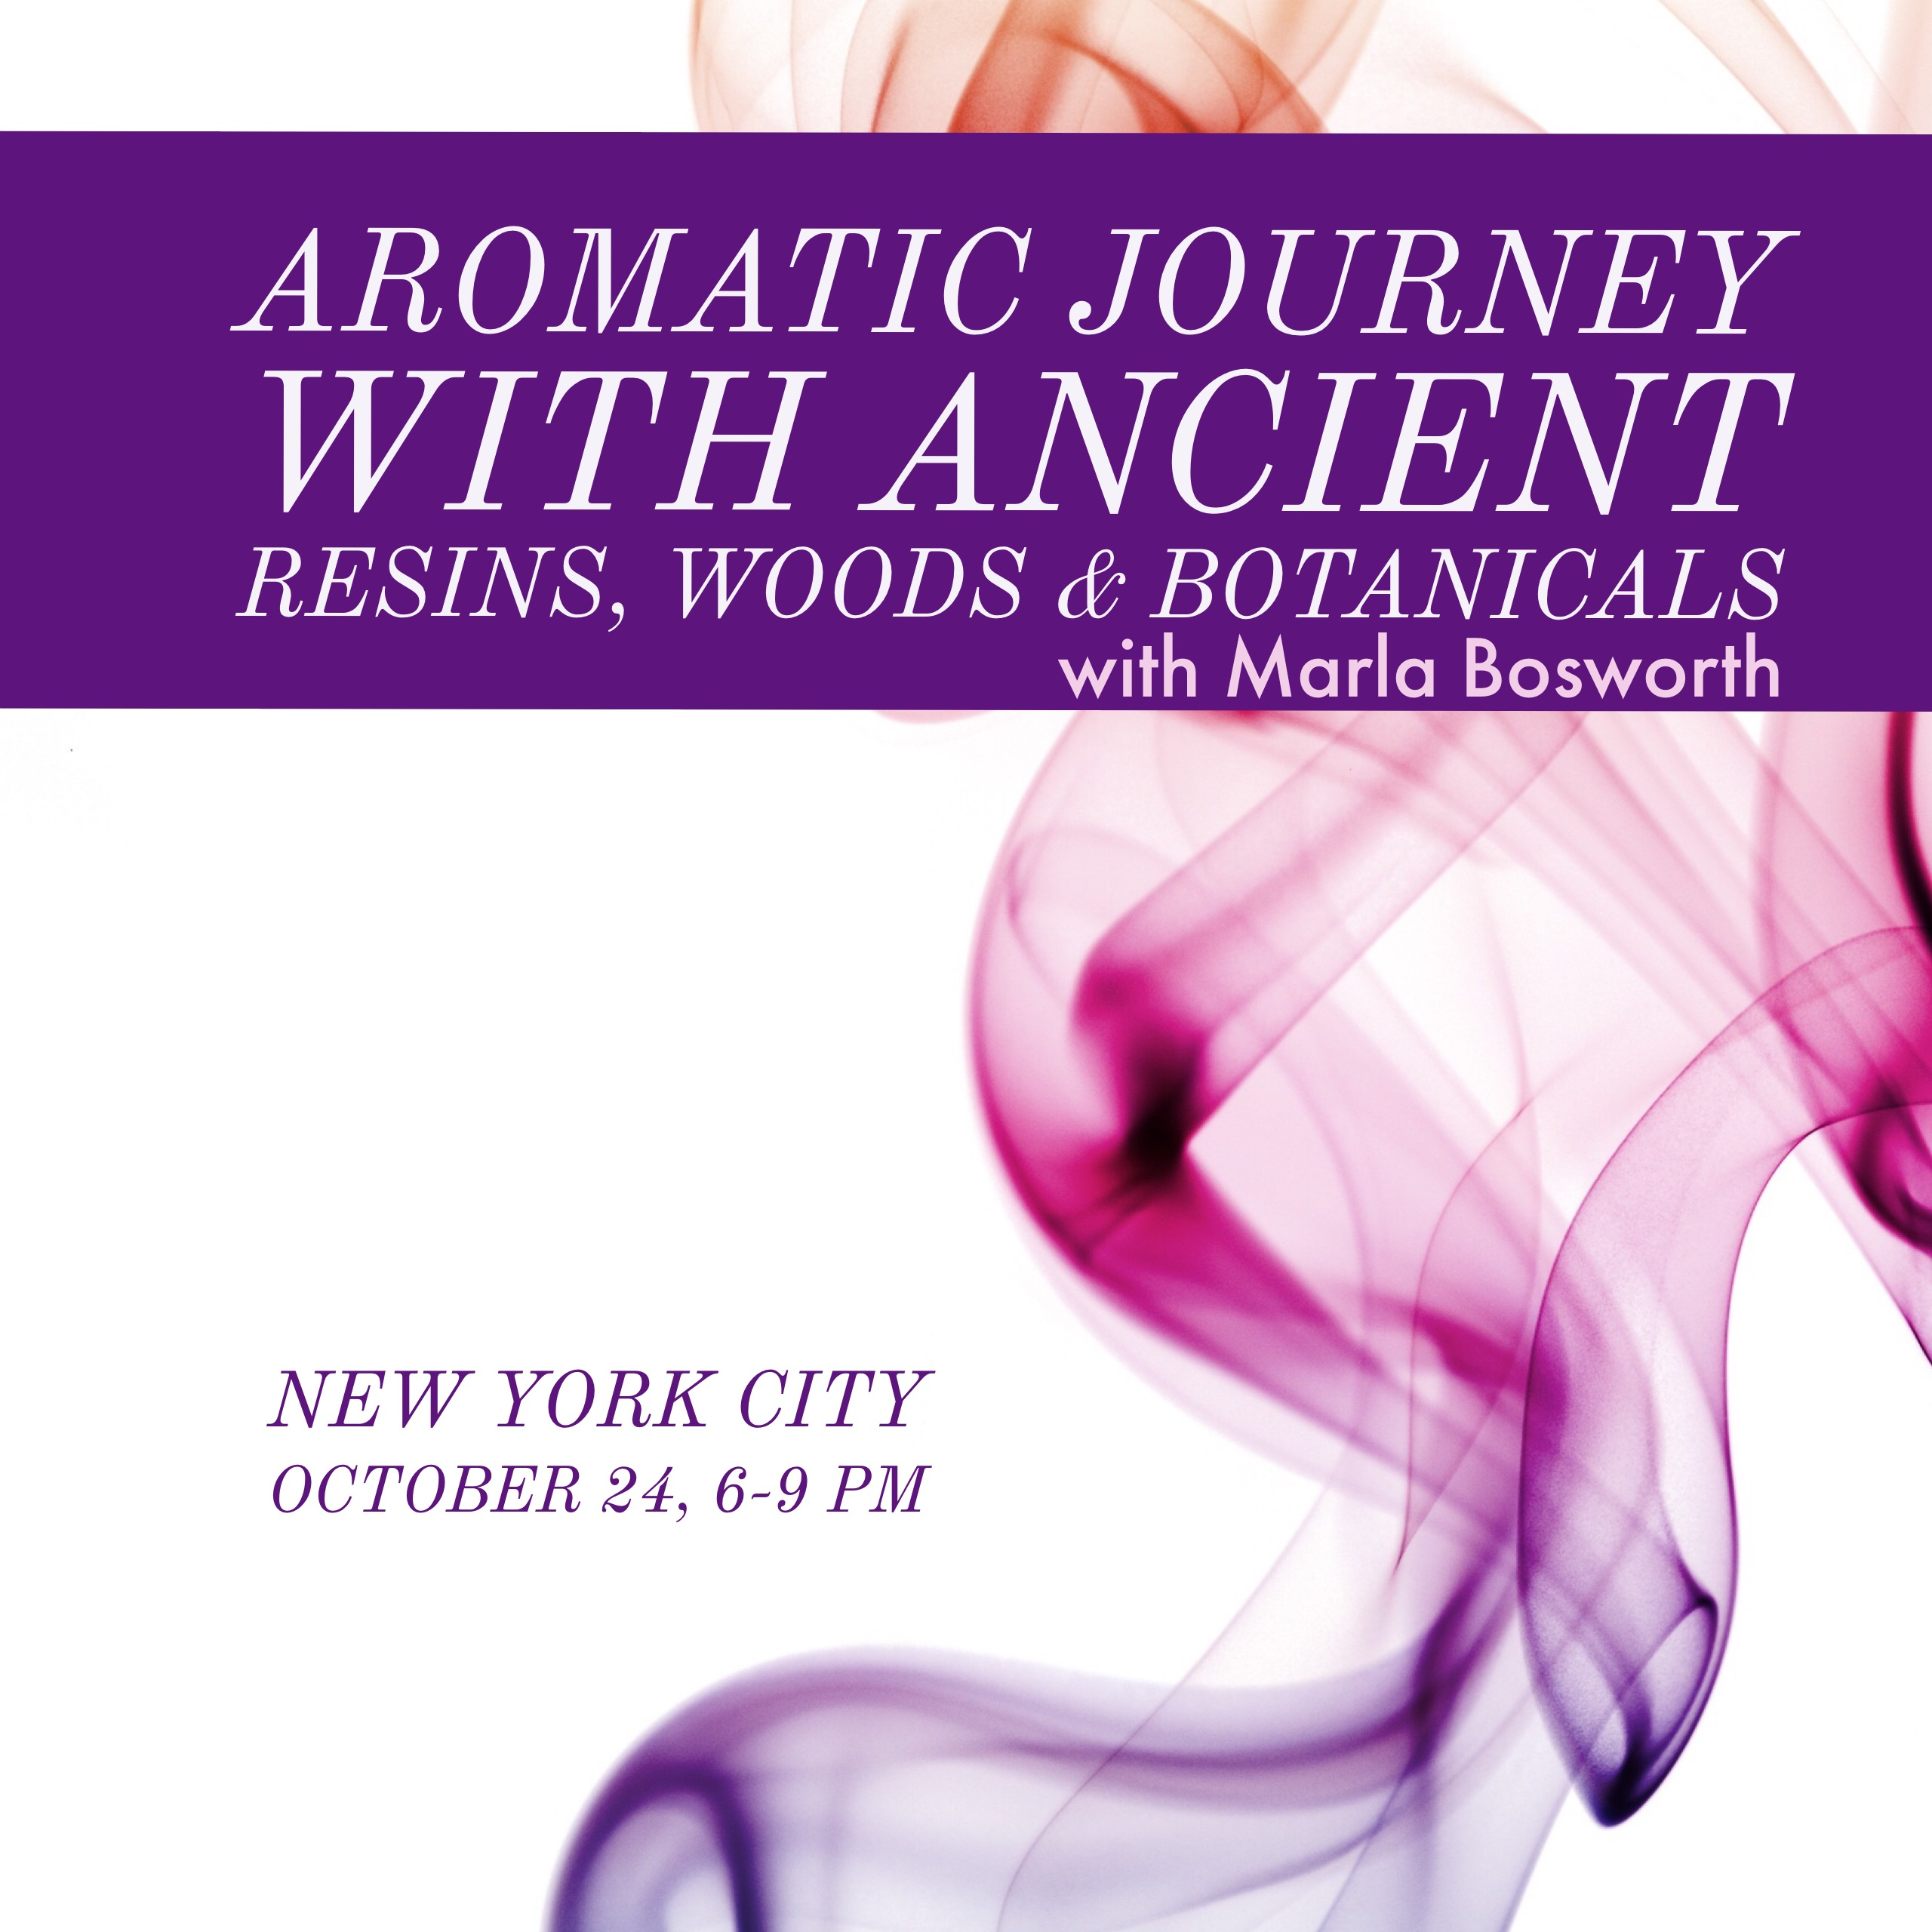 Aromatic Journey: Ancient Woods, Botanicals & Resins - Oct. 24